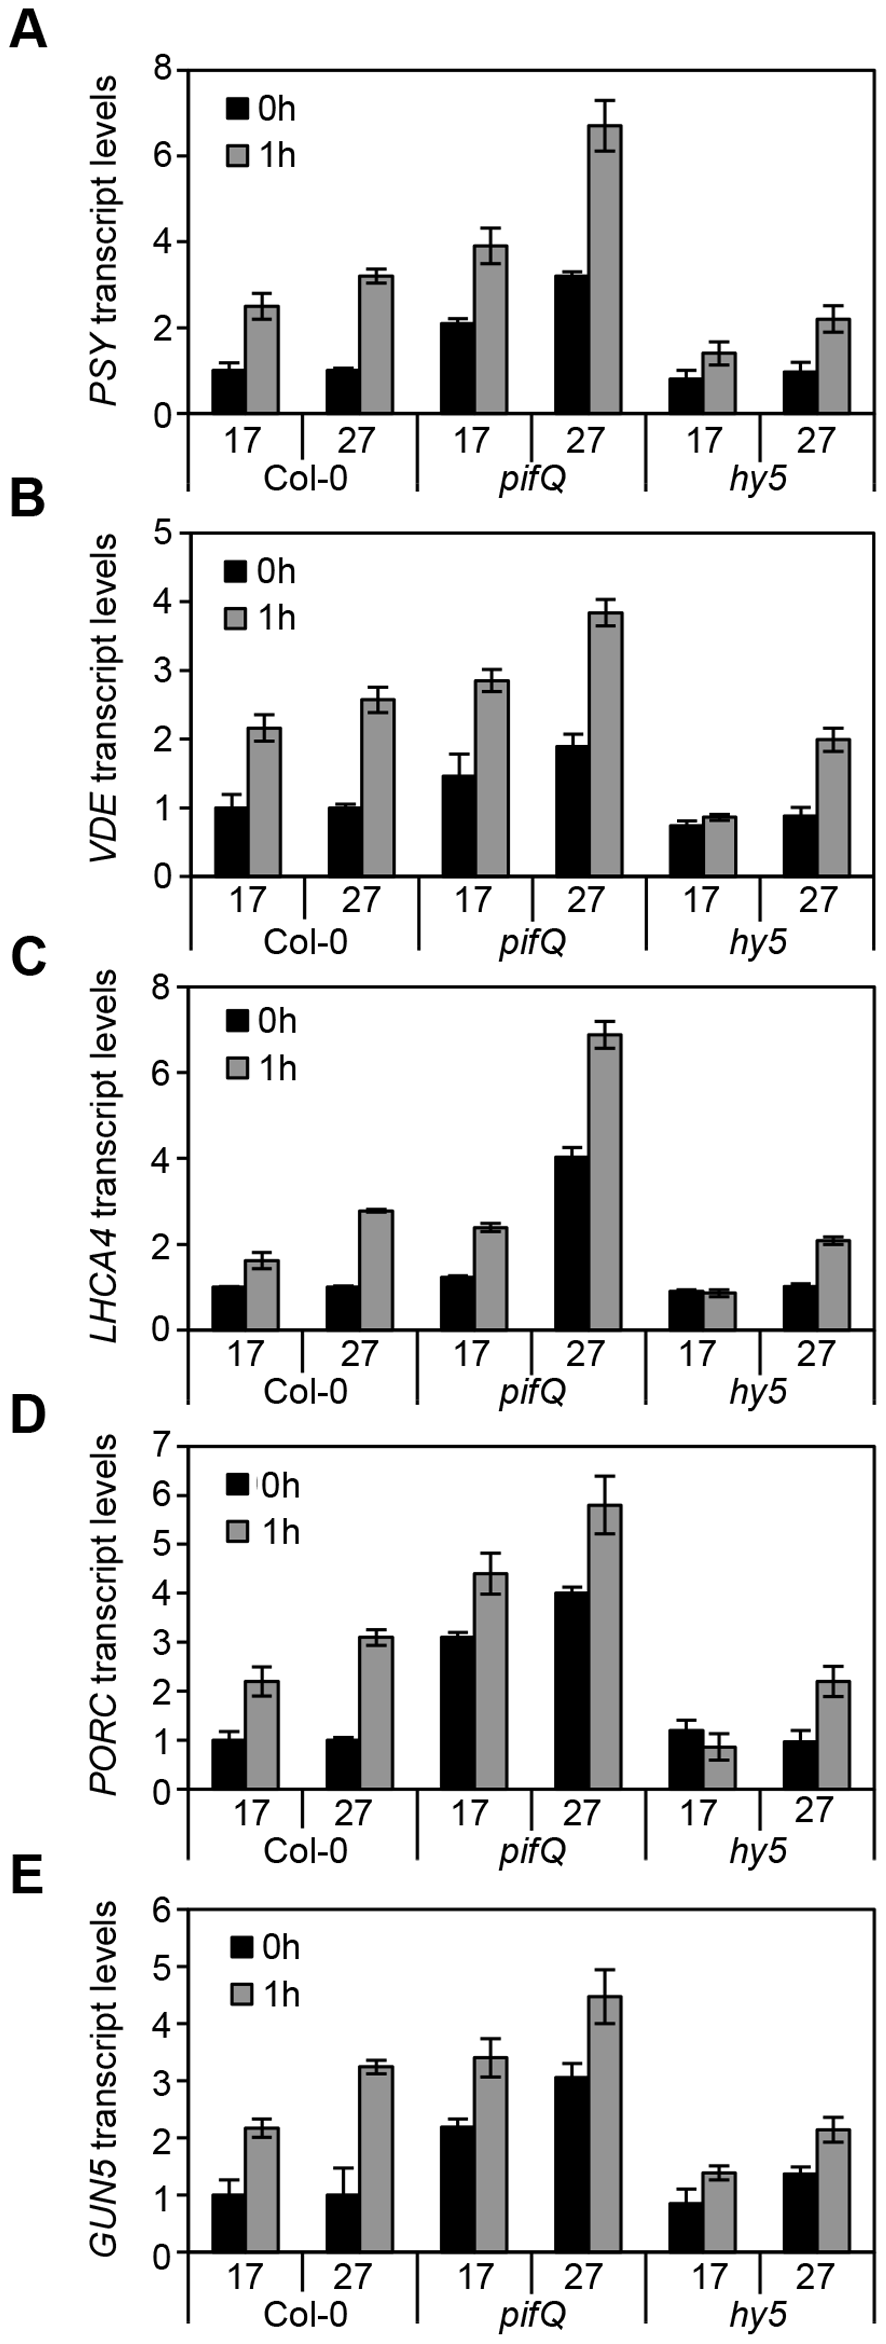 Expression levels of genes related to photosynthetic pigment accumulation at 17°C and 27°C in Col-0, <i>pifQ</i> (<i>pif1-1 pif3-3 pif4-2 pif5-3</i>) and <i>hy5-215</i>.